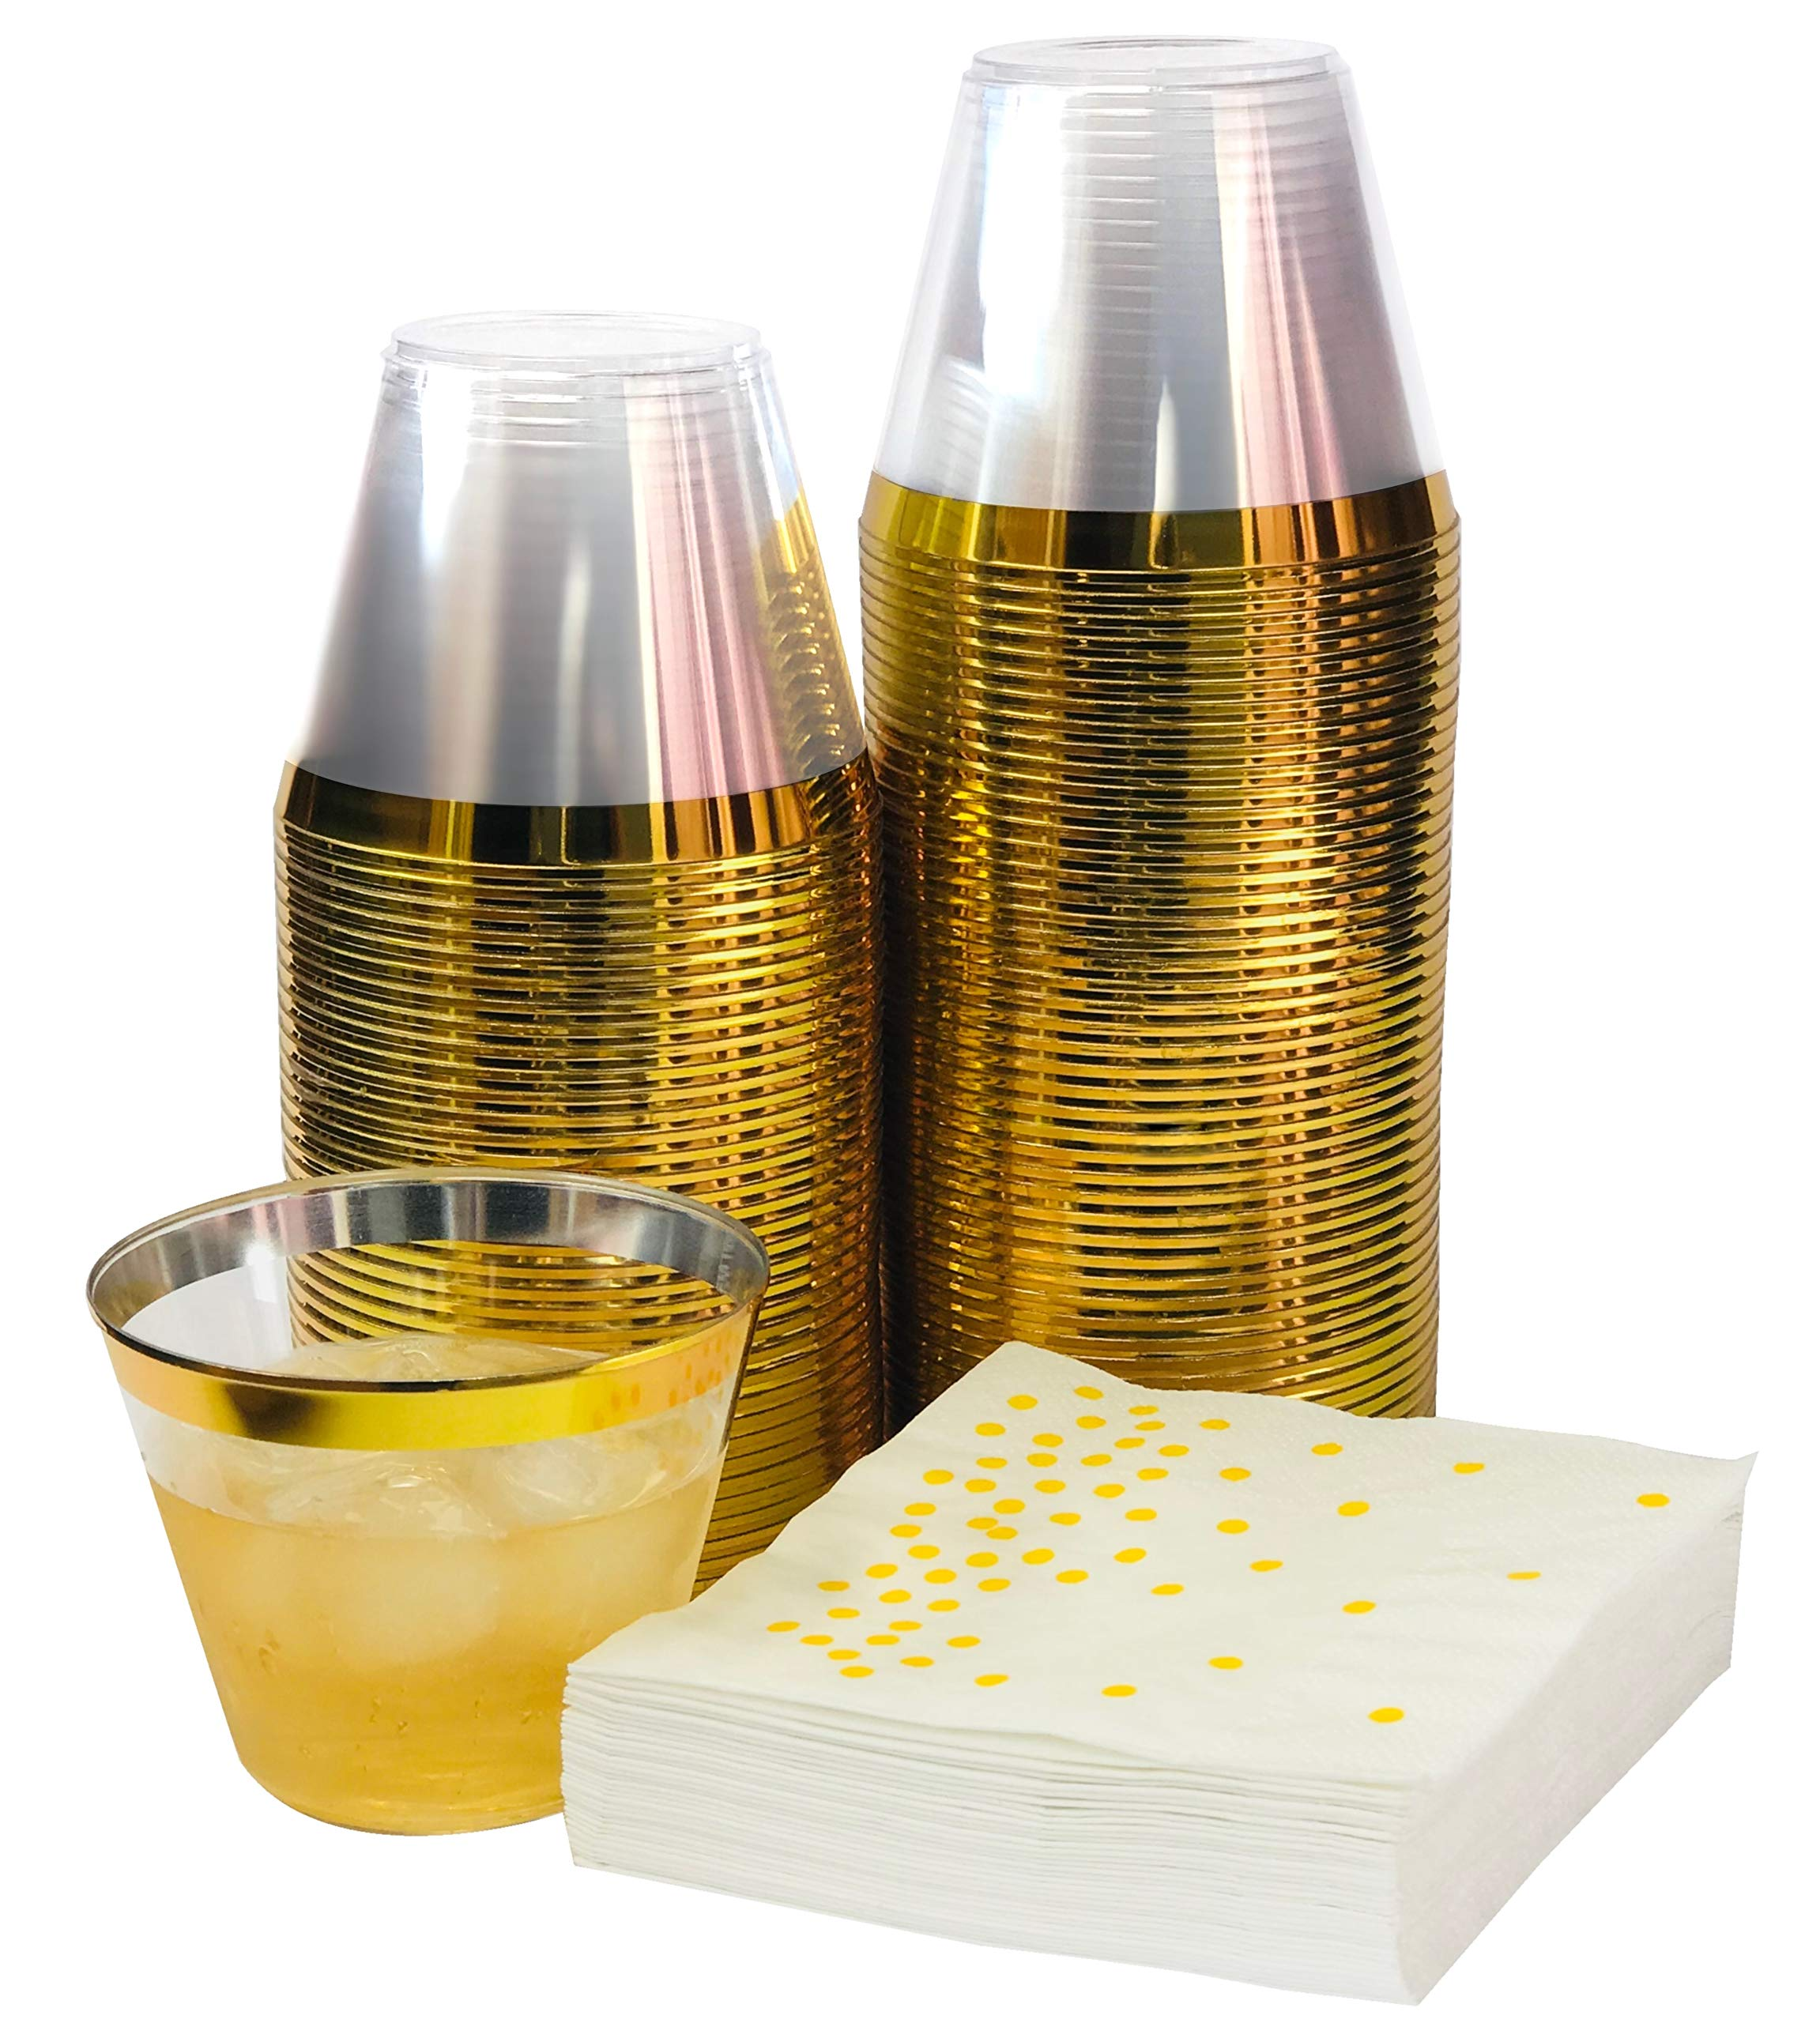 Premium 100 Gold Rimmed 9 oz Clear Plastic Cups + FREE 100 Napkins ~ Perfect for Wedding/Engagement/ Cocktails/Dinner/Wine/Birthday Parties ~ SUPER VALUE PARTY PACK 100 GOLD RIM CUPS + 100 NAPKINS